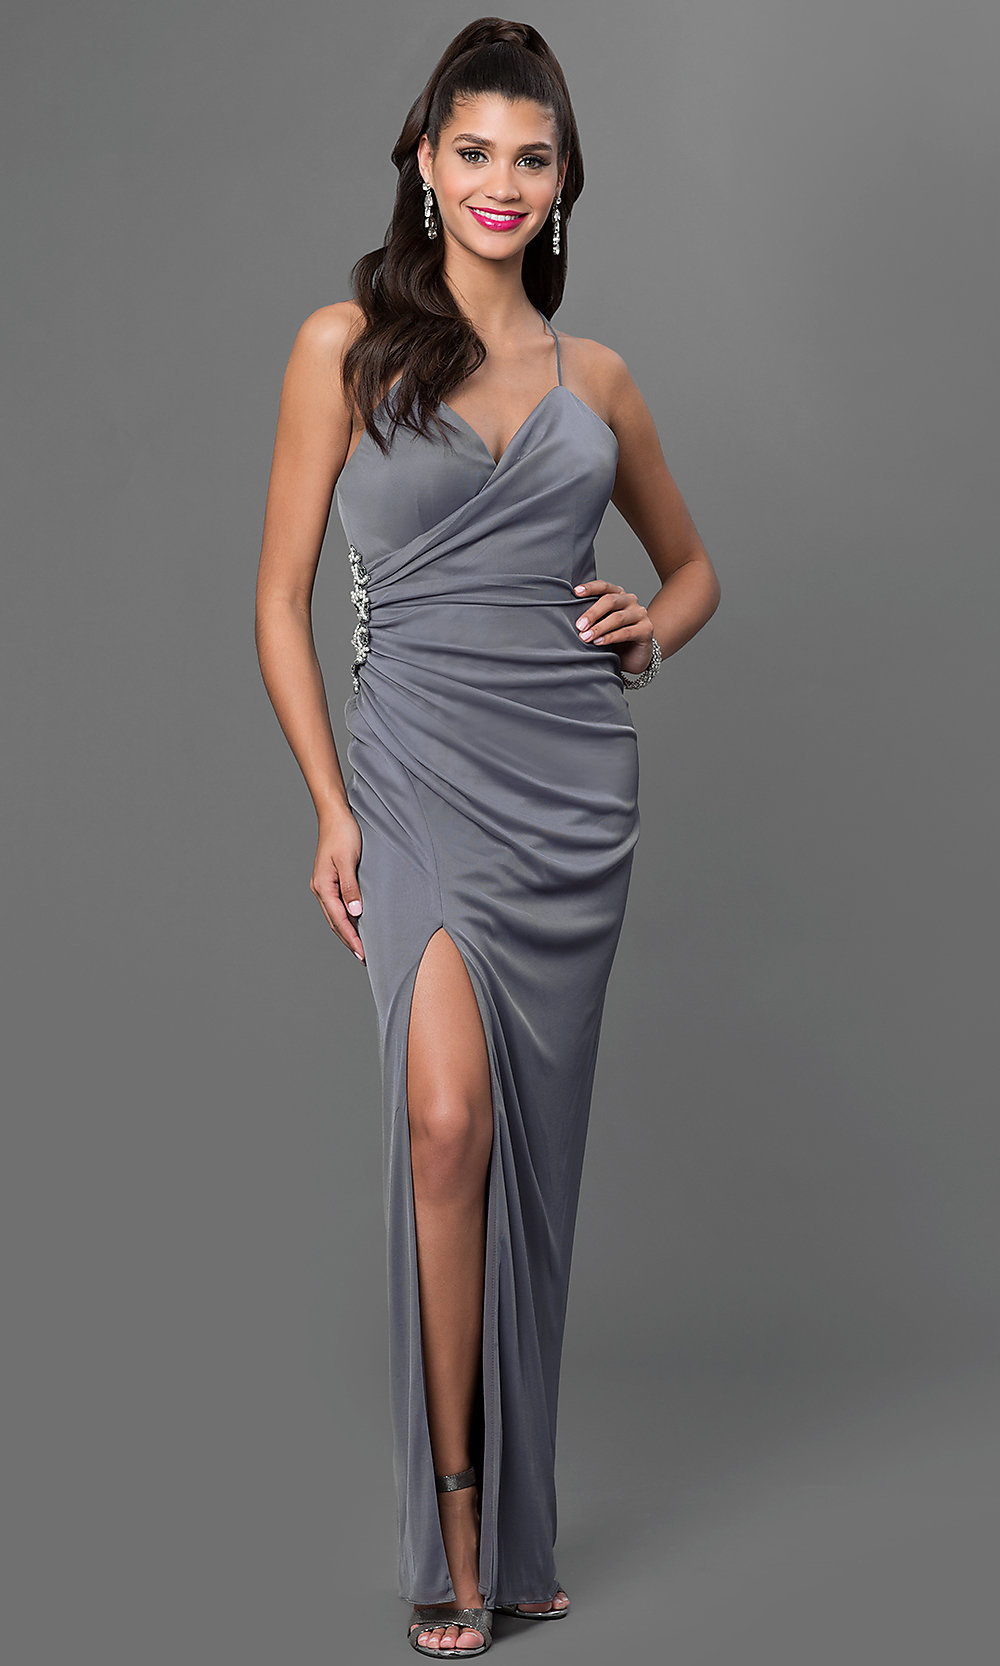 Long Backless Chiffon Onyx Prom Dress - PromGirl